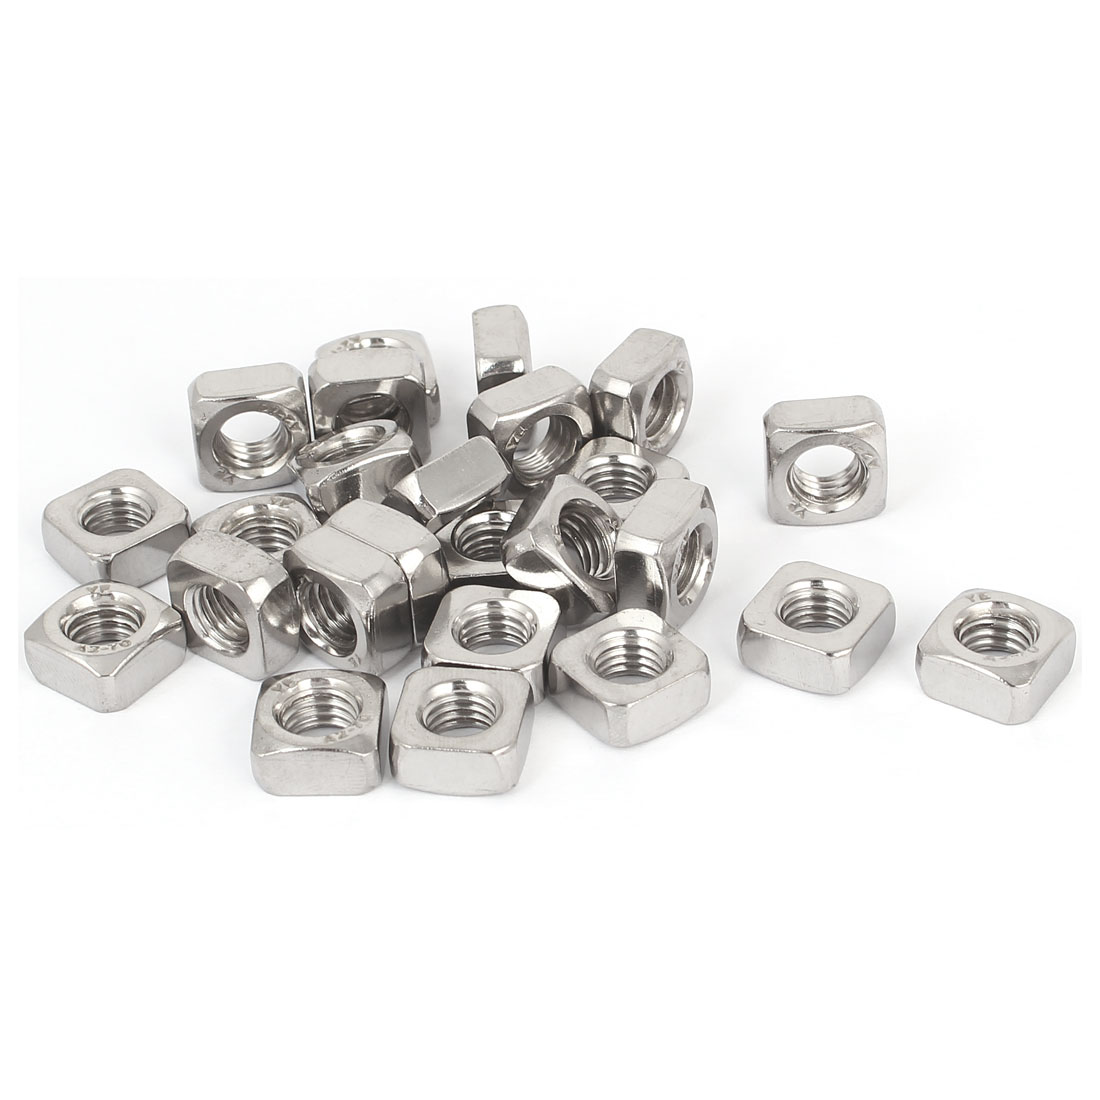 304 Stainless Steel Square Machine Screw Nuts Silver Tone M8 25Pcs